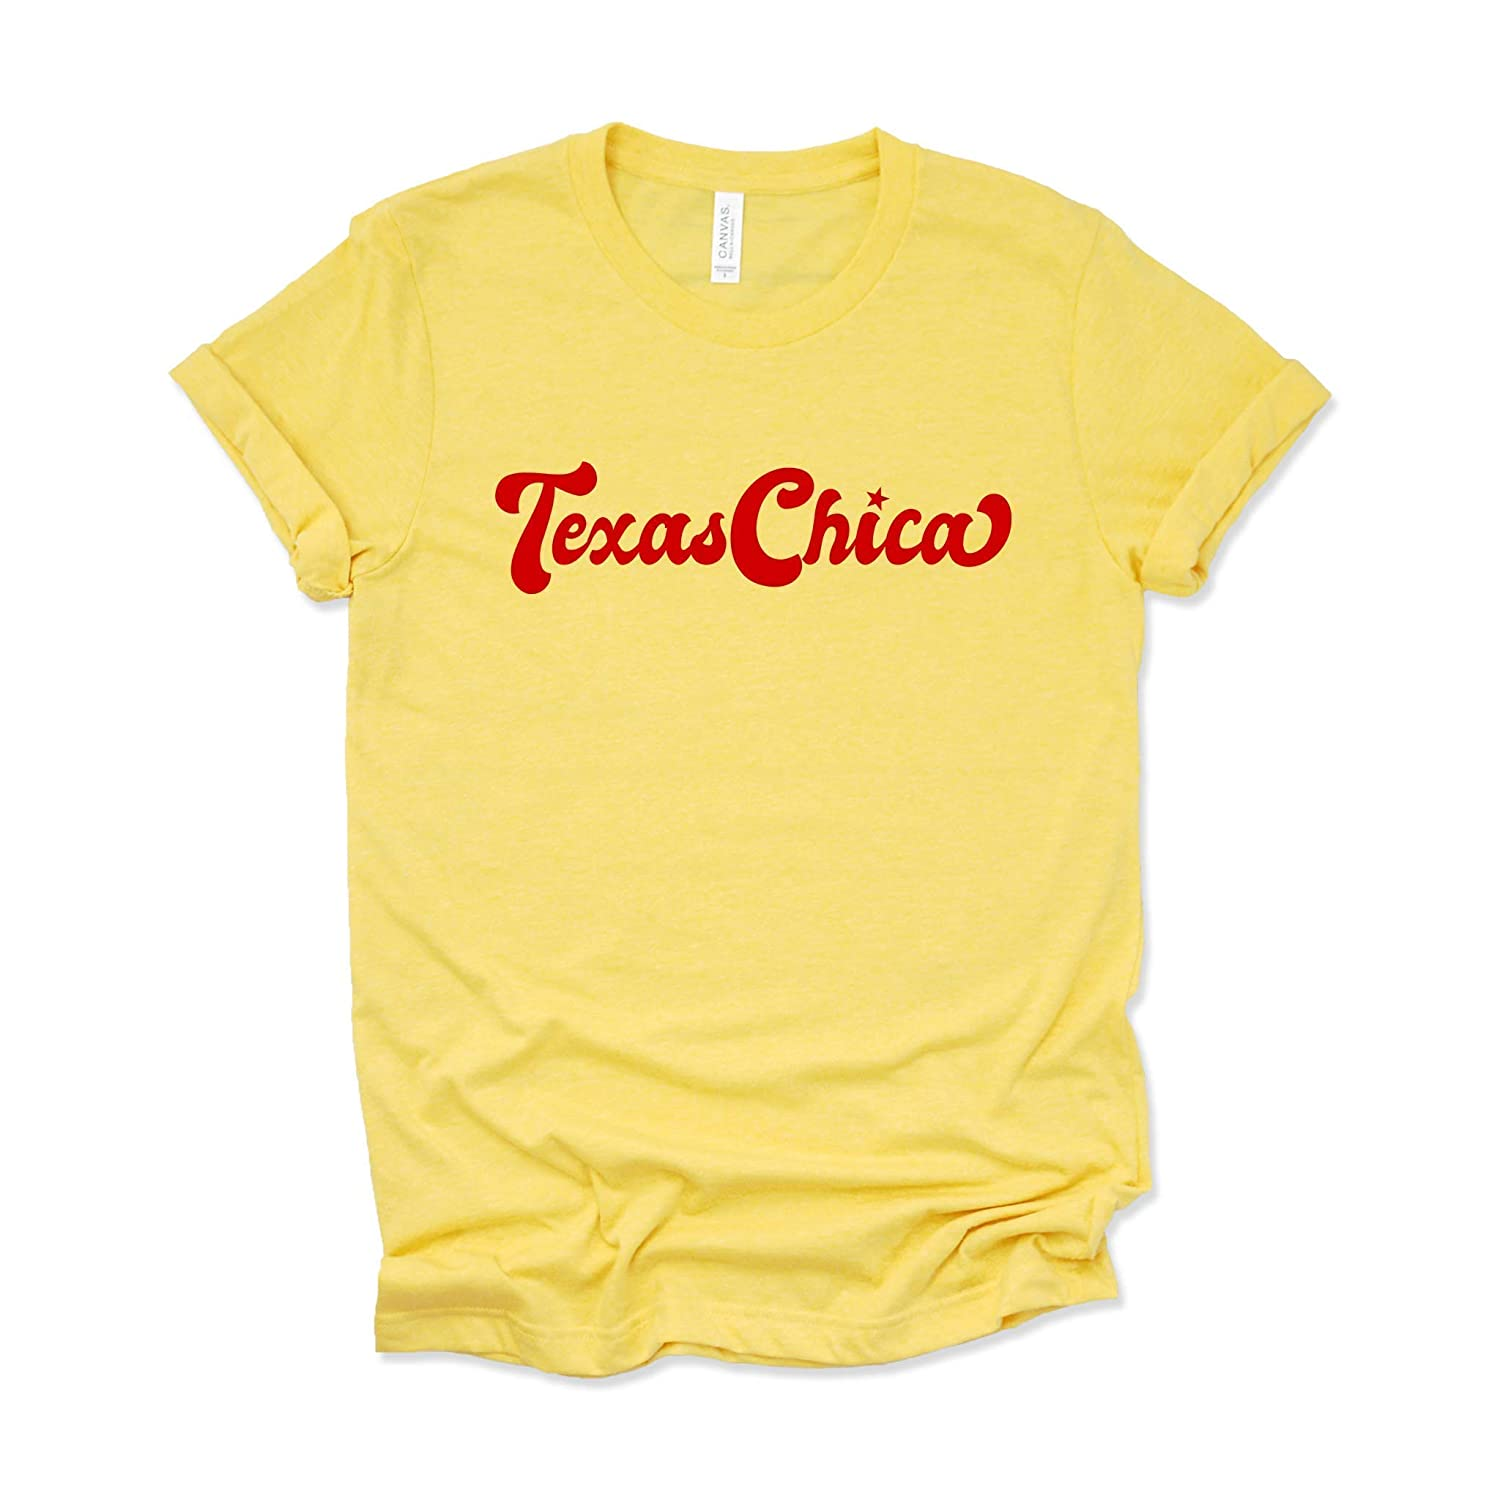 df5578c1 Texas Chica T Shirt Texas Girl Womens Graphic Tees Cute Summer TShirts